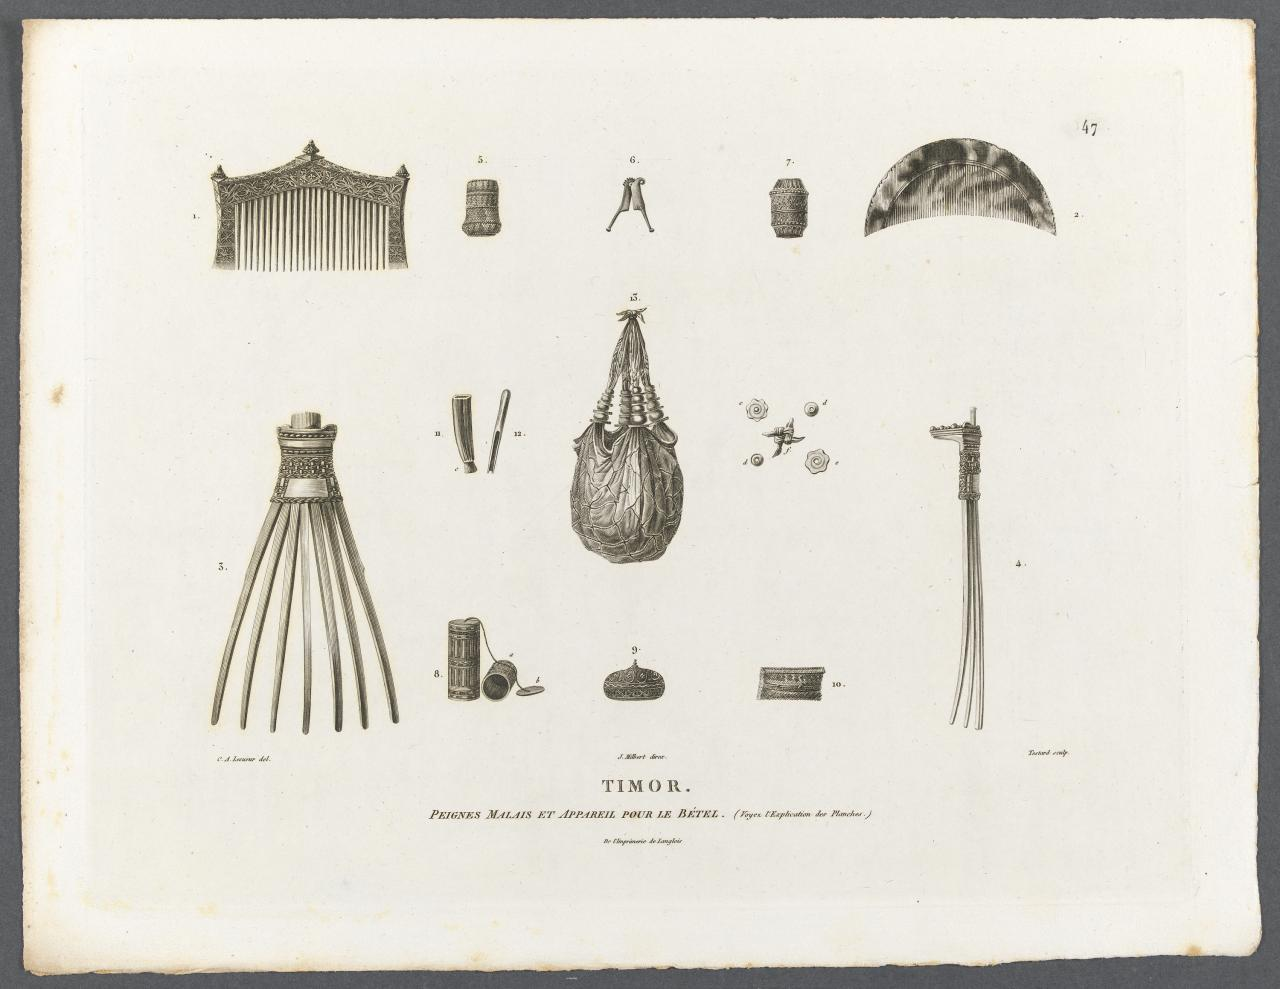 Malay combs and various utensils for betel users